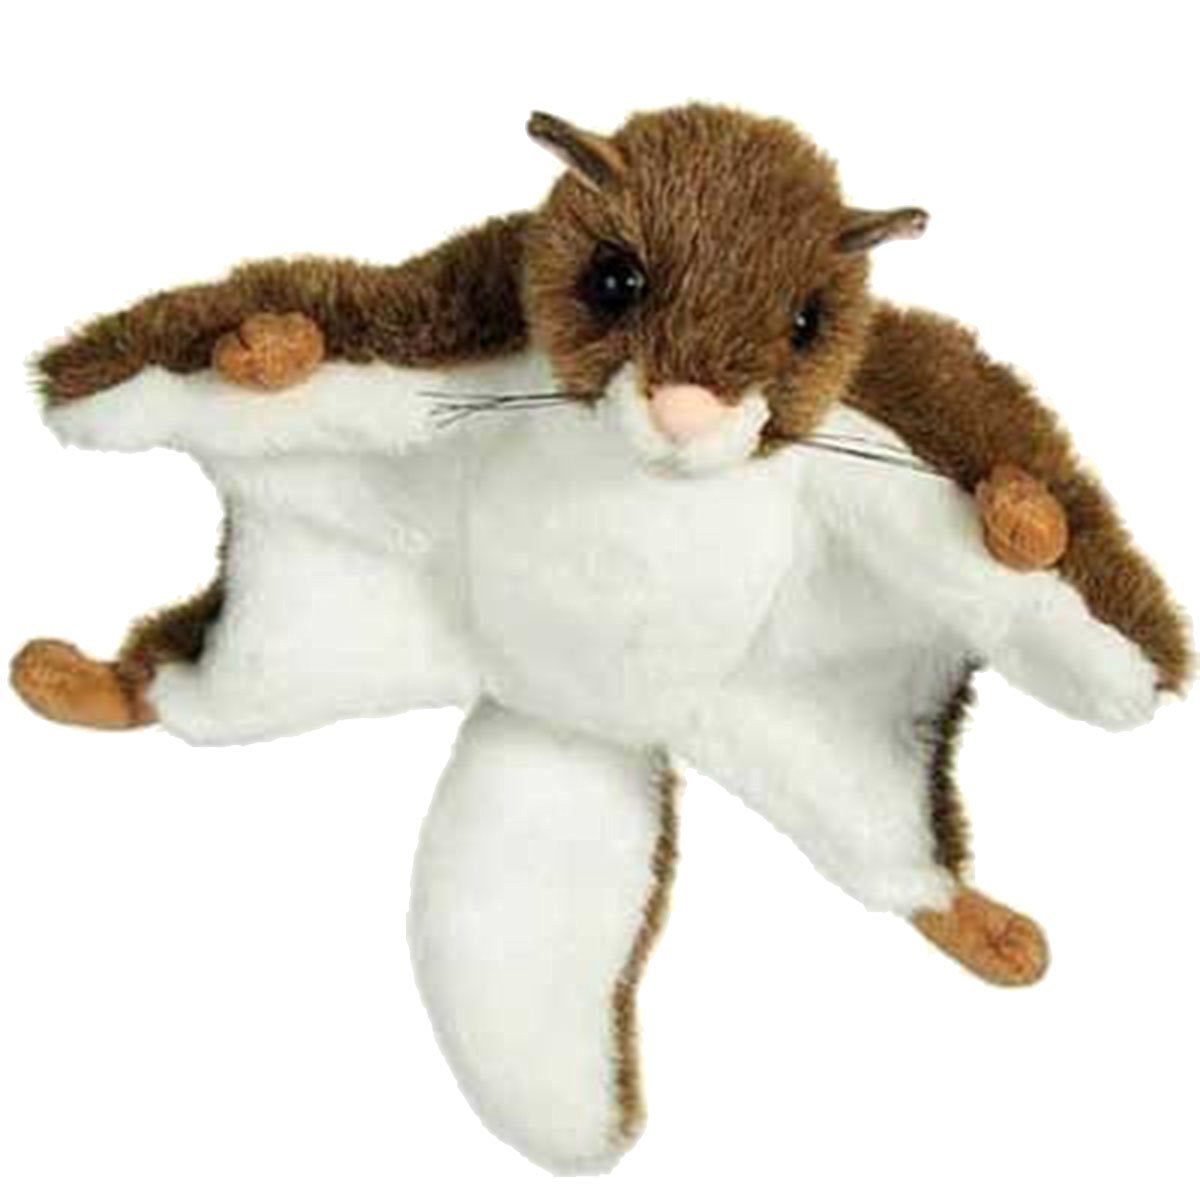 New in Package FREE SHIPPINGAAA 52020S Flying Squirrel Standing Model Toy